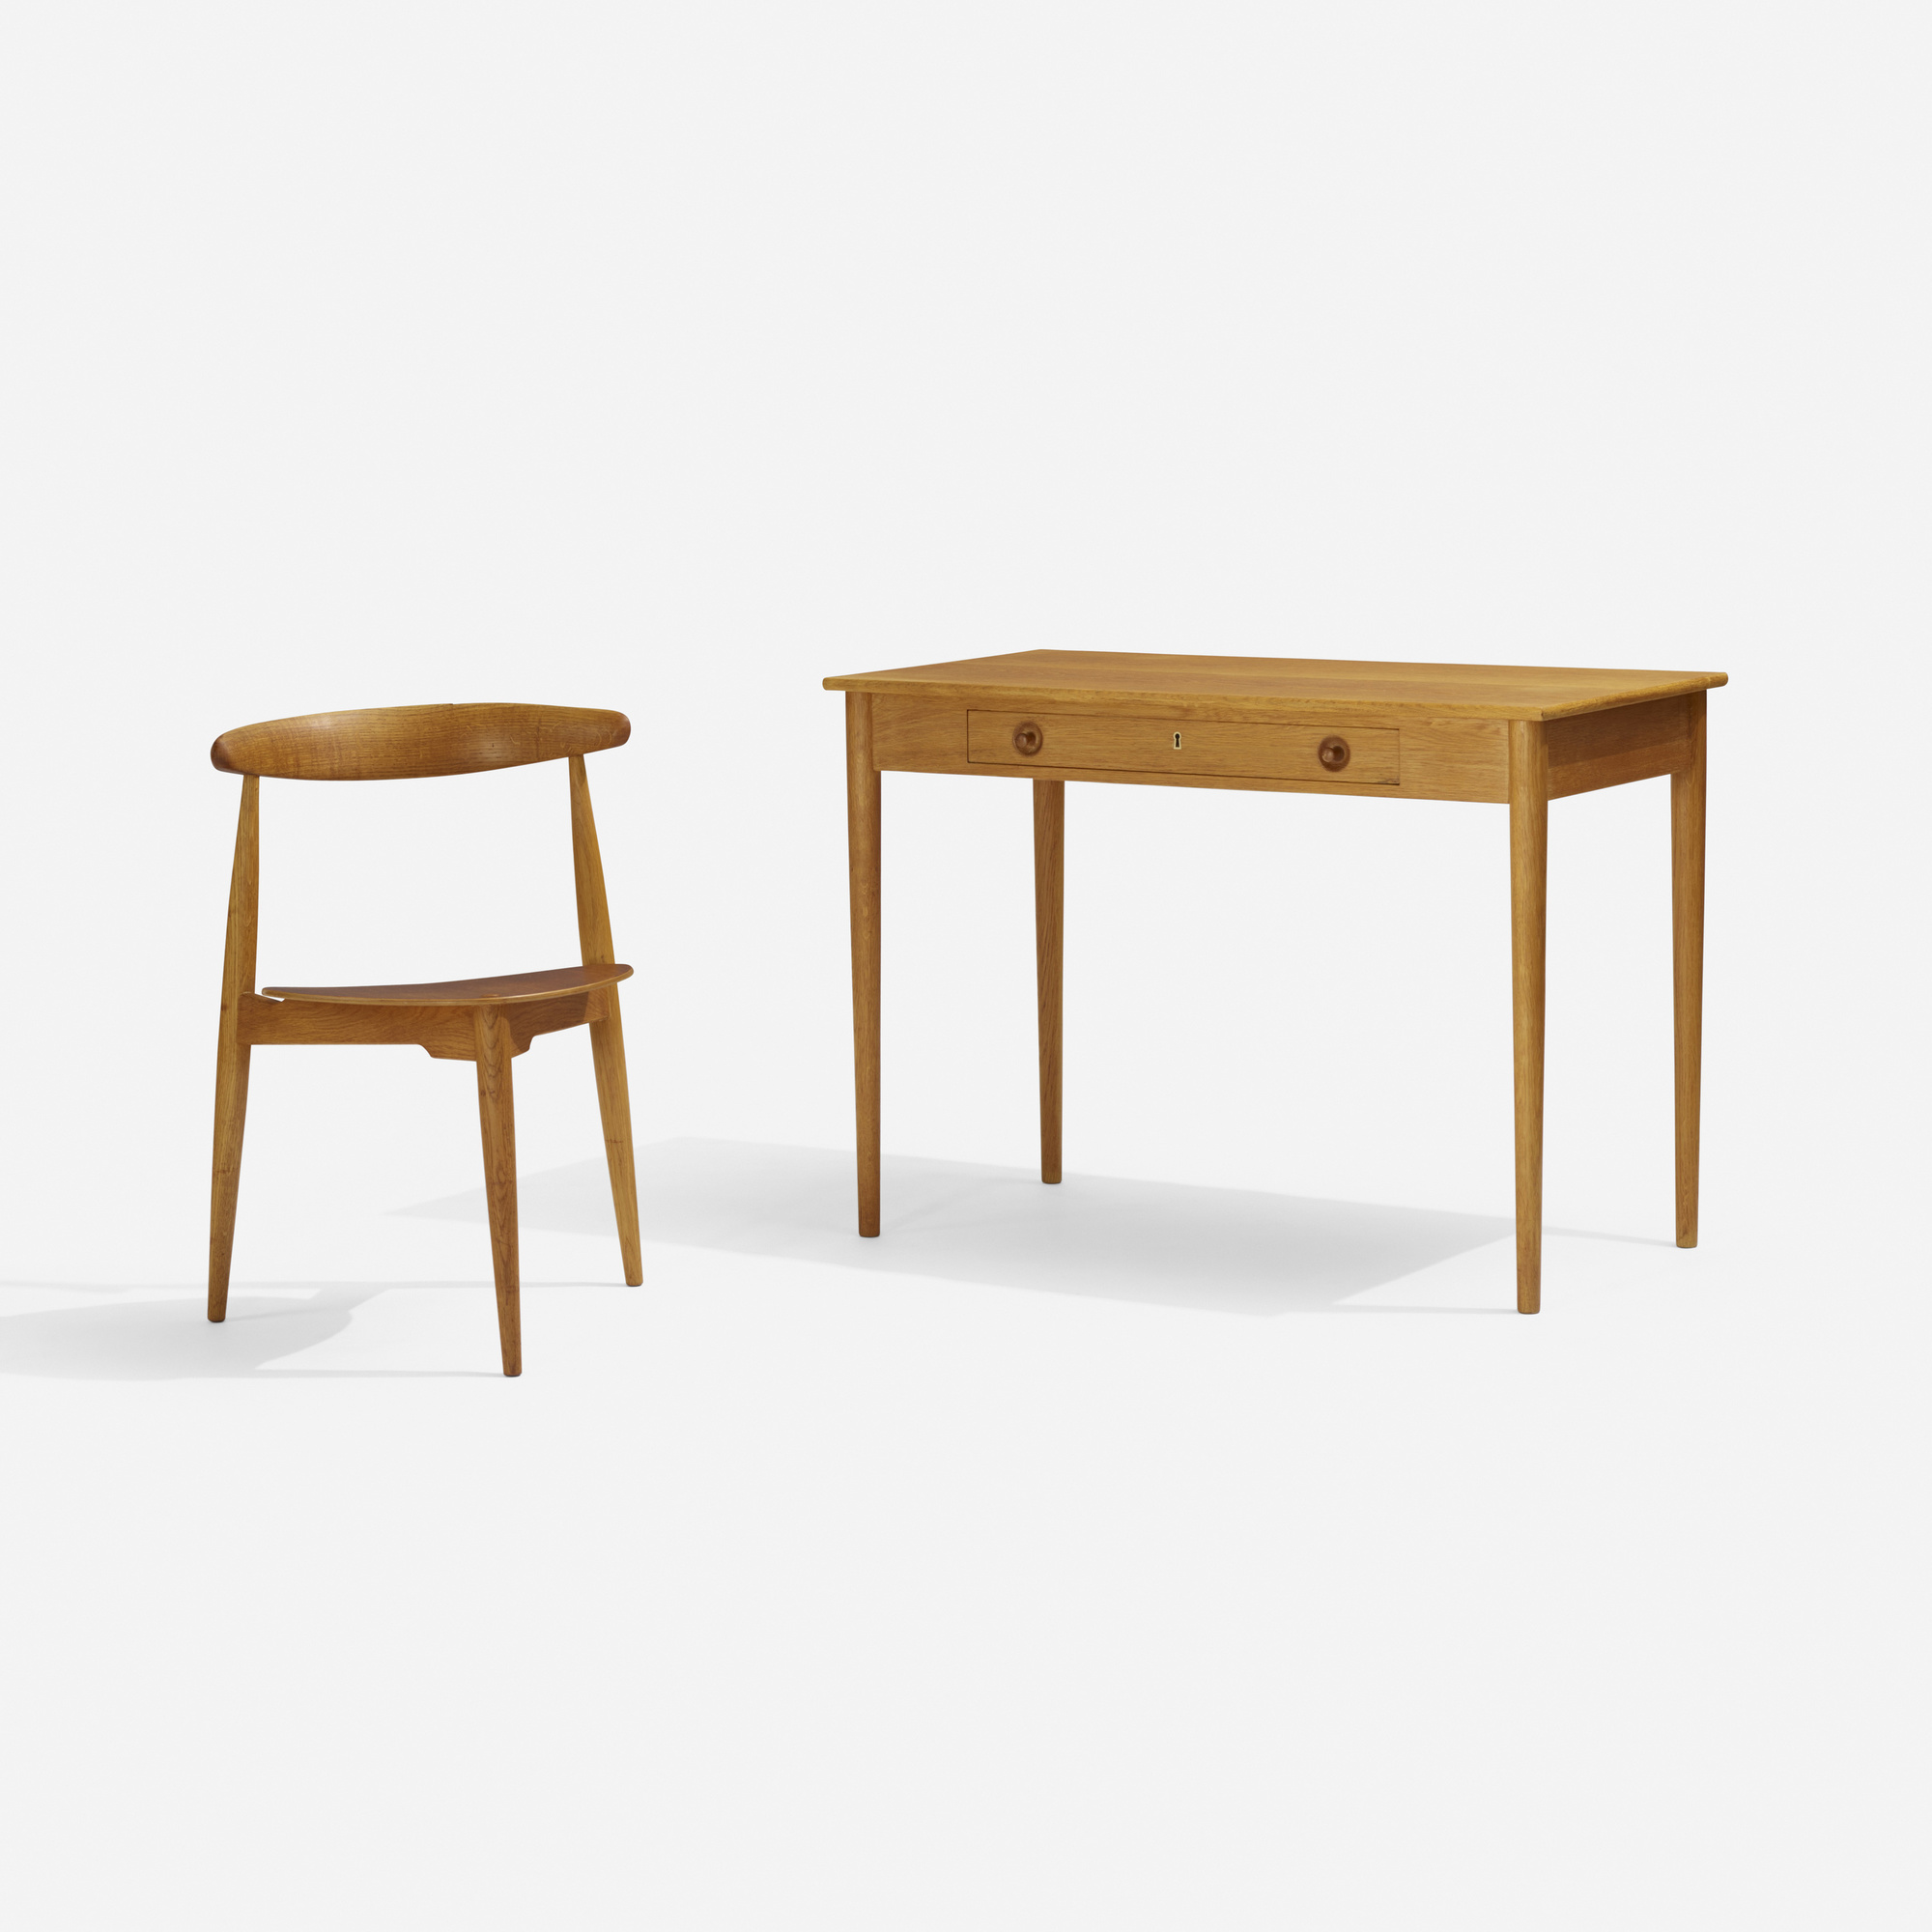 130: Hans J. Wegner / desk and Heart chair (2 of 3)